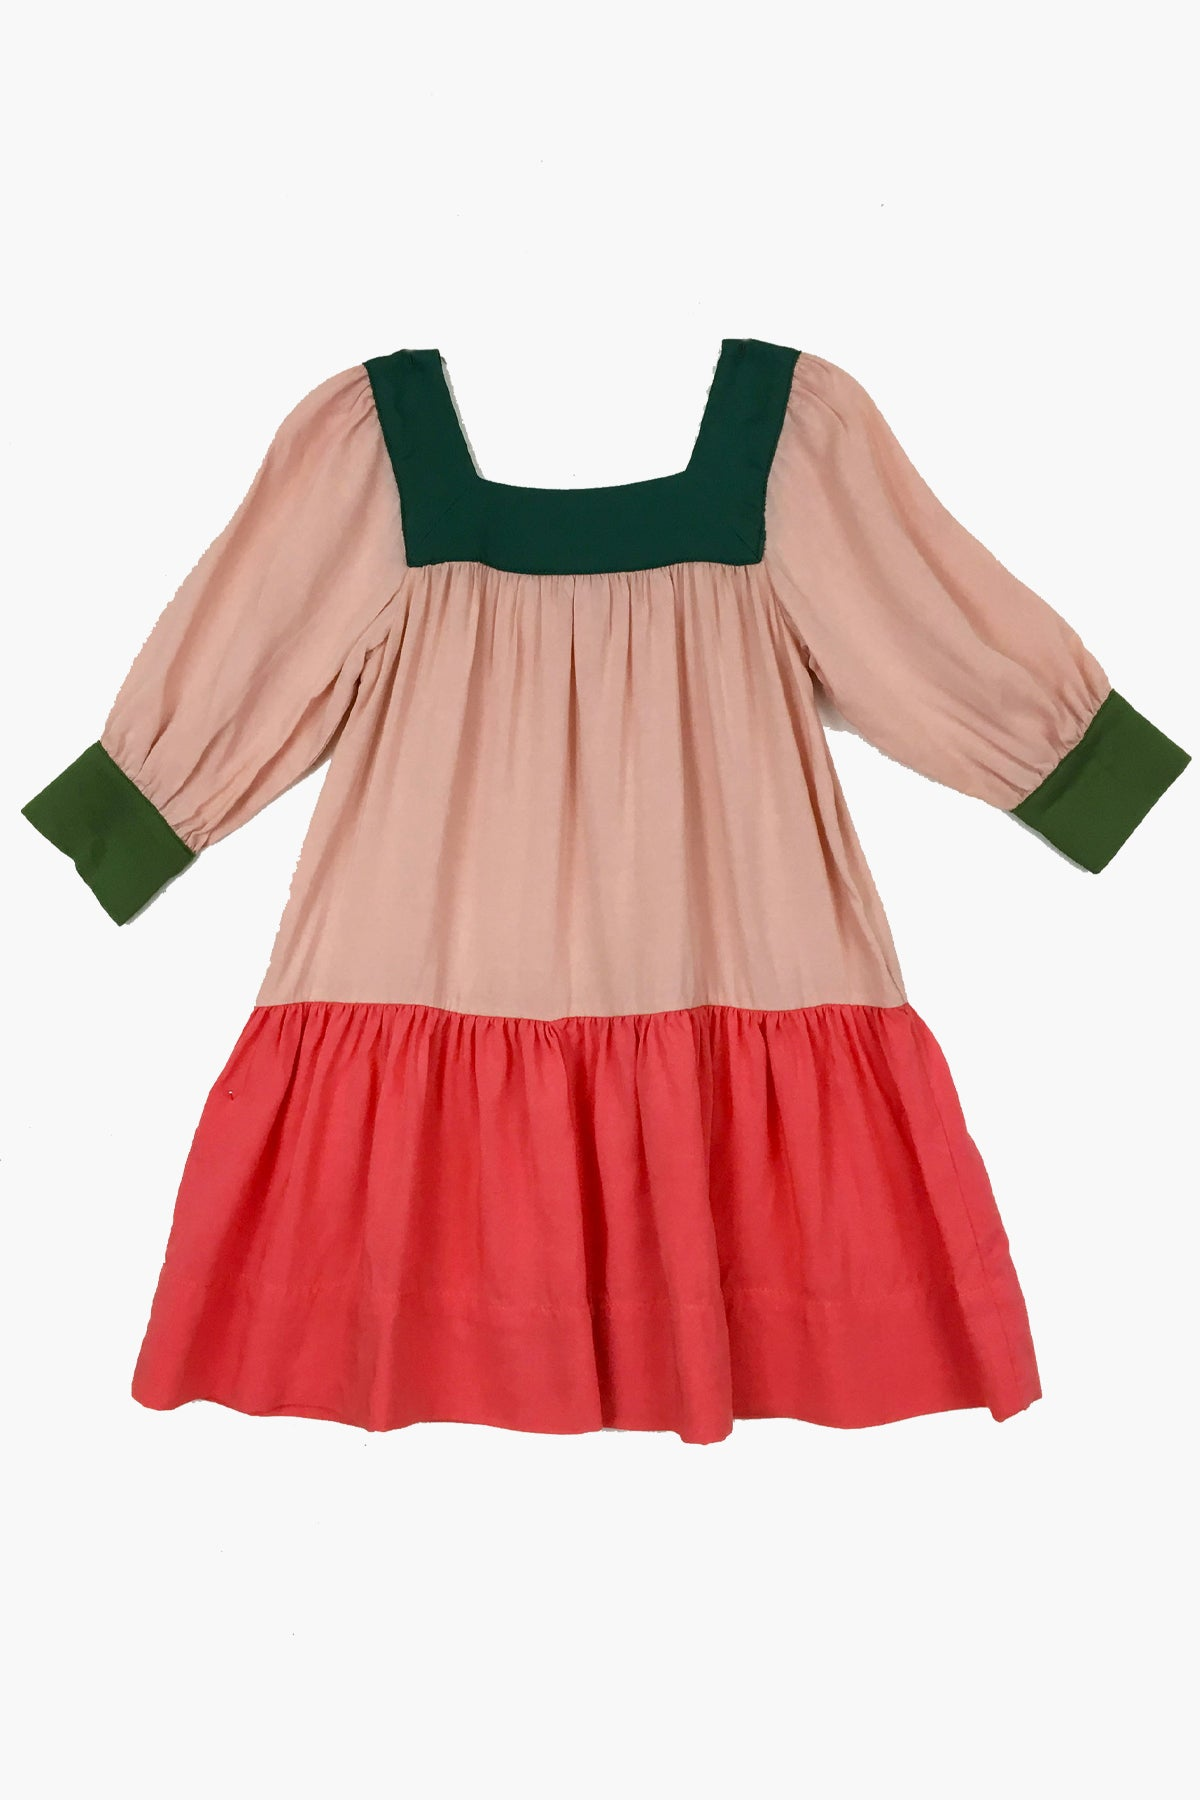 Peas and Queues Lark Girls Dress - Watermelon